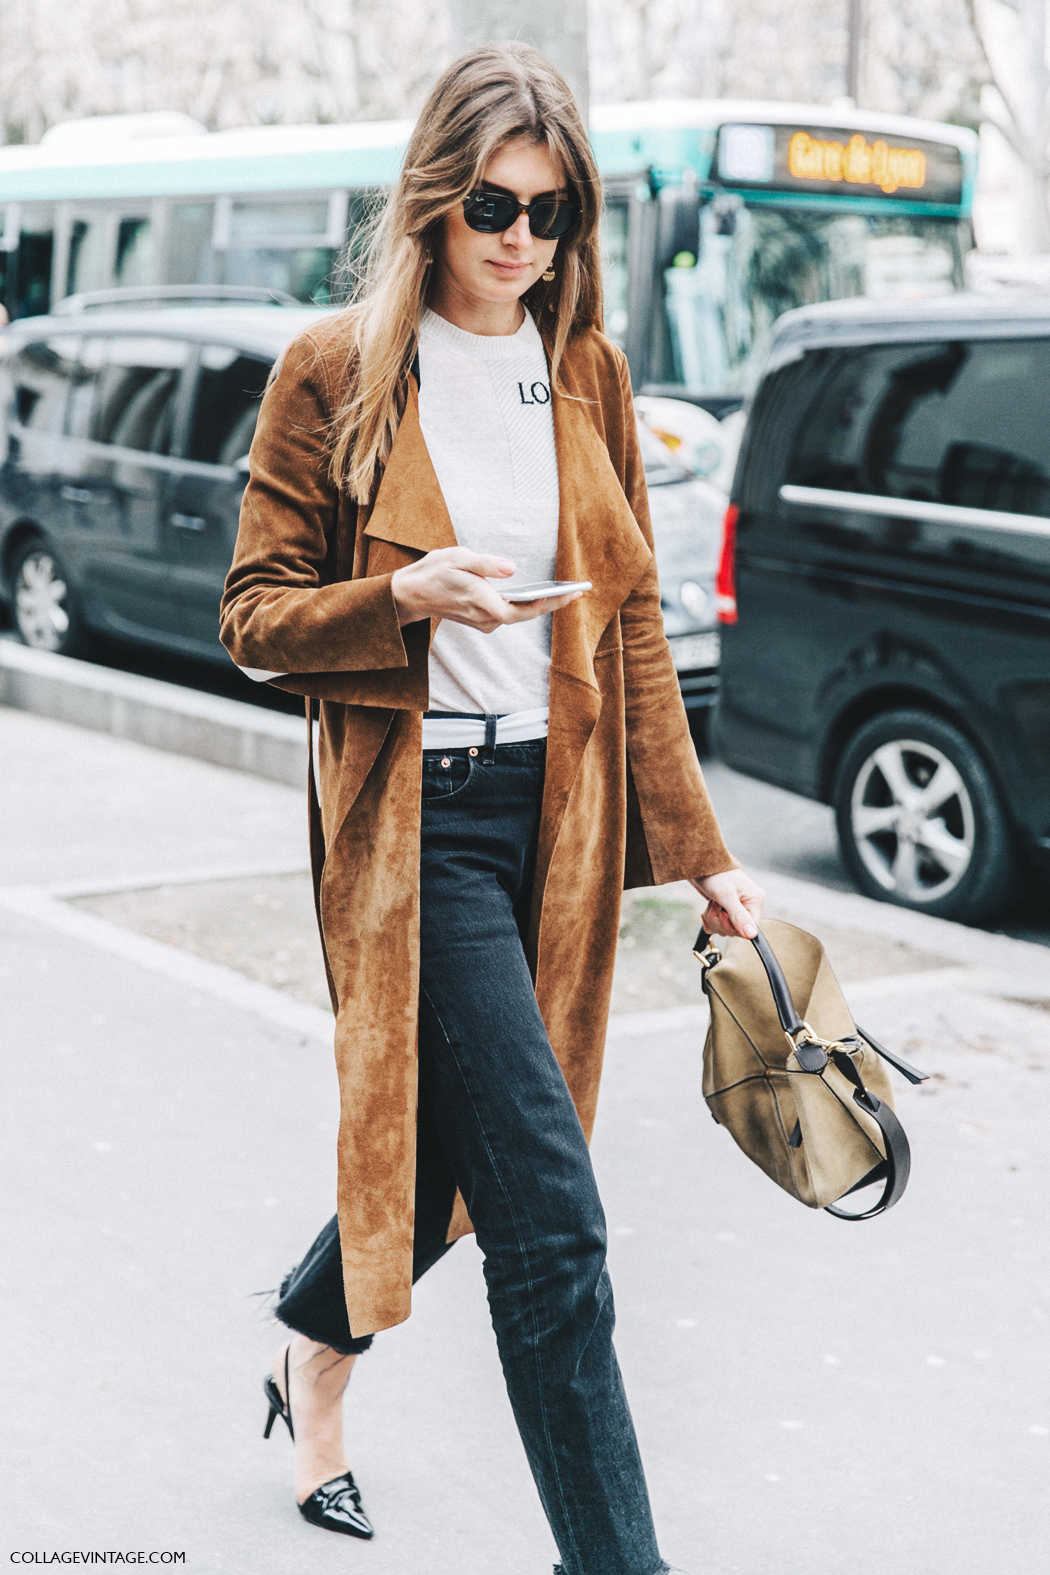 PFW-Paris_Fashion_Week_Fall_2016-Street_Style-Collage_Vintage-Loewe_Top-Suede_Trench-2